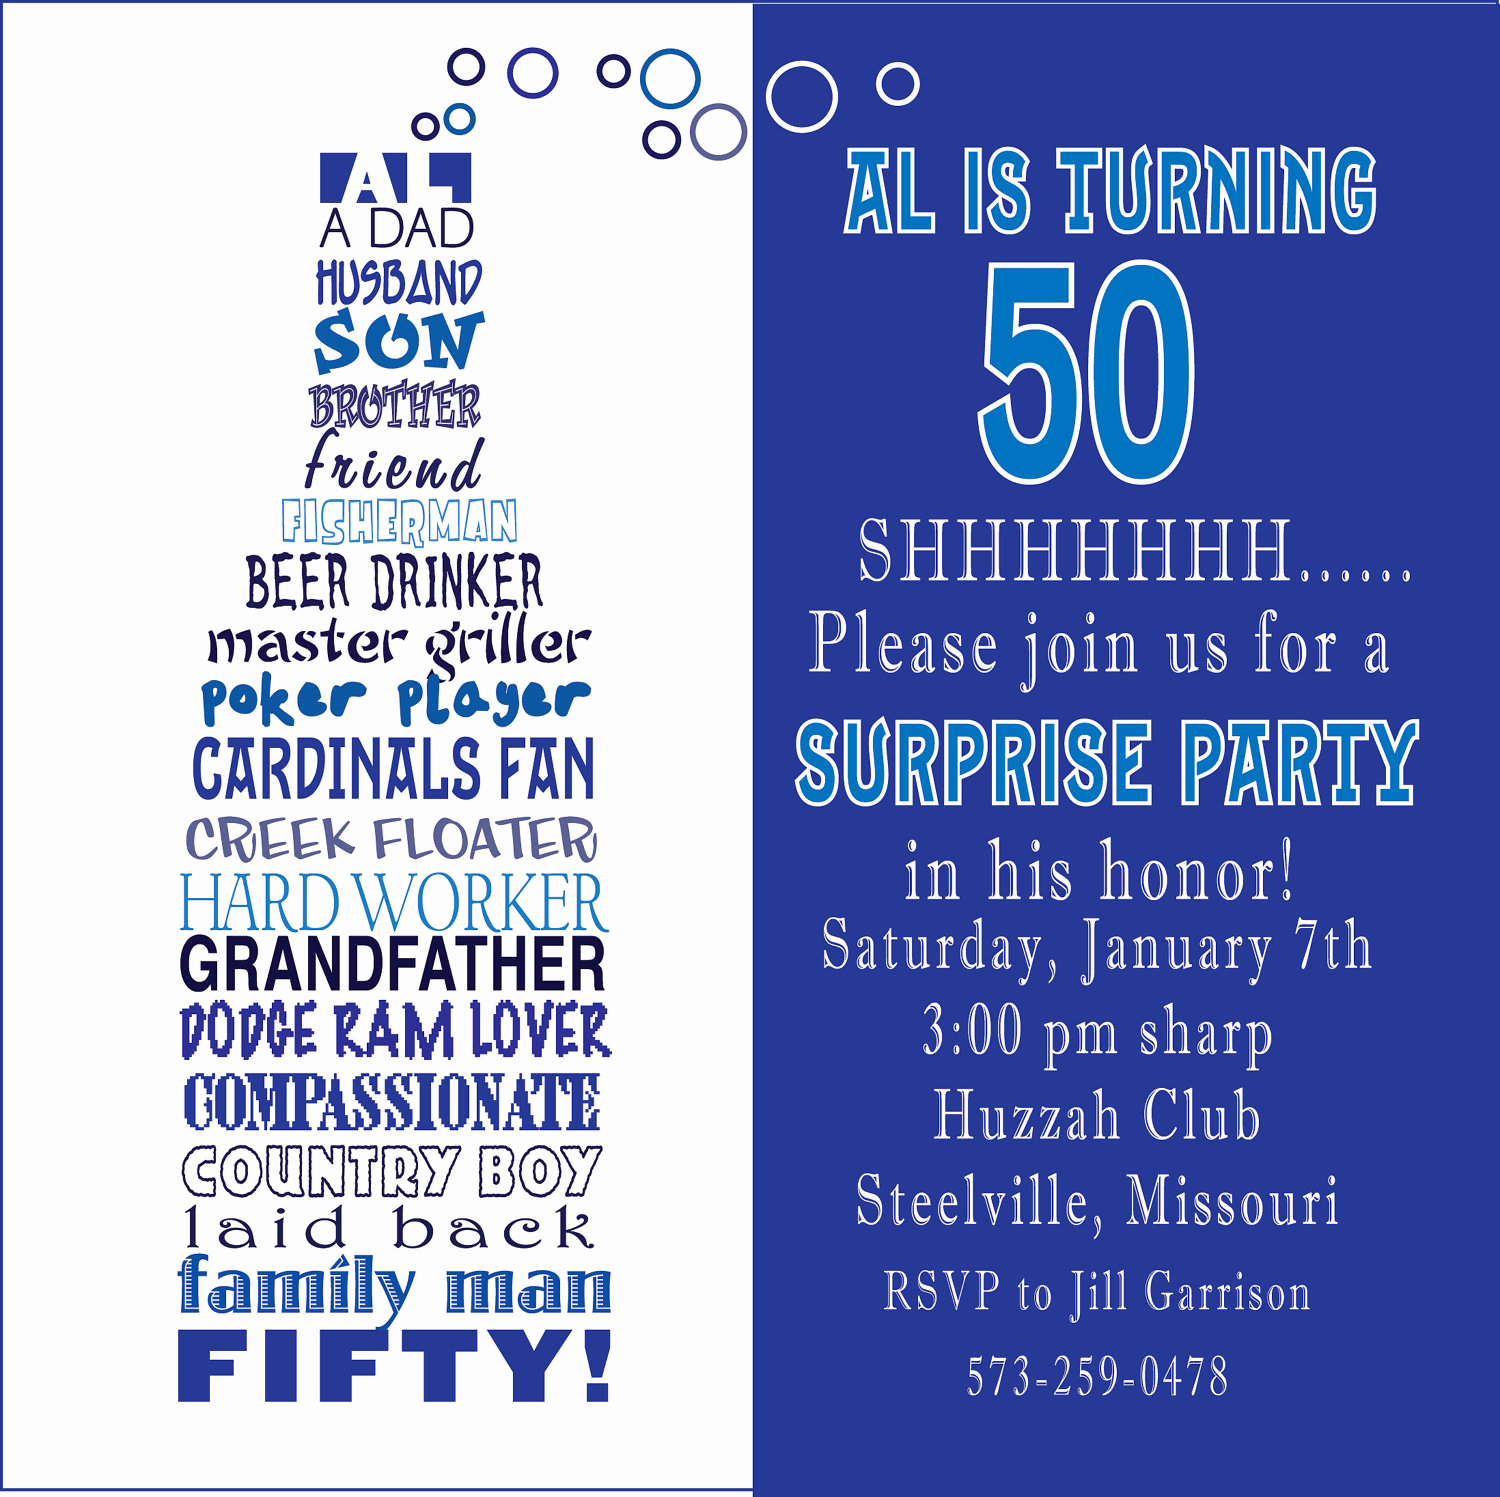 Funny Party Invitation Wording Fresh Funny 50th Birthday Party Invitation Wording